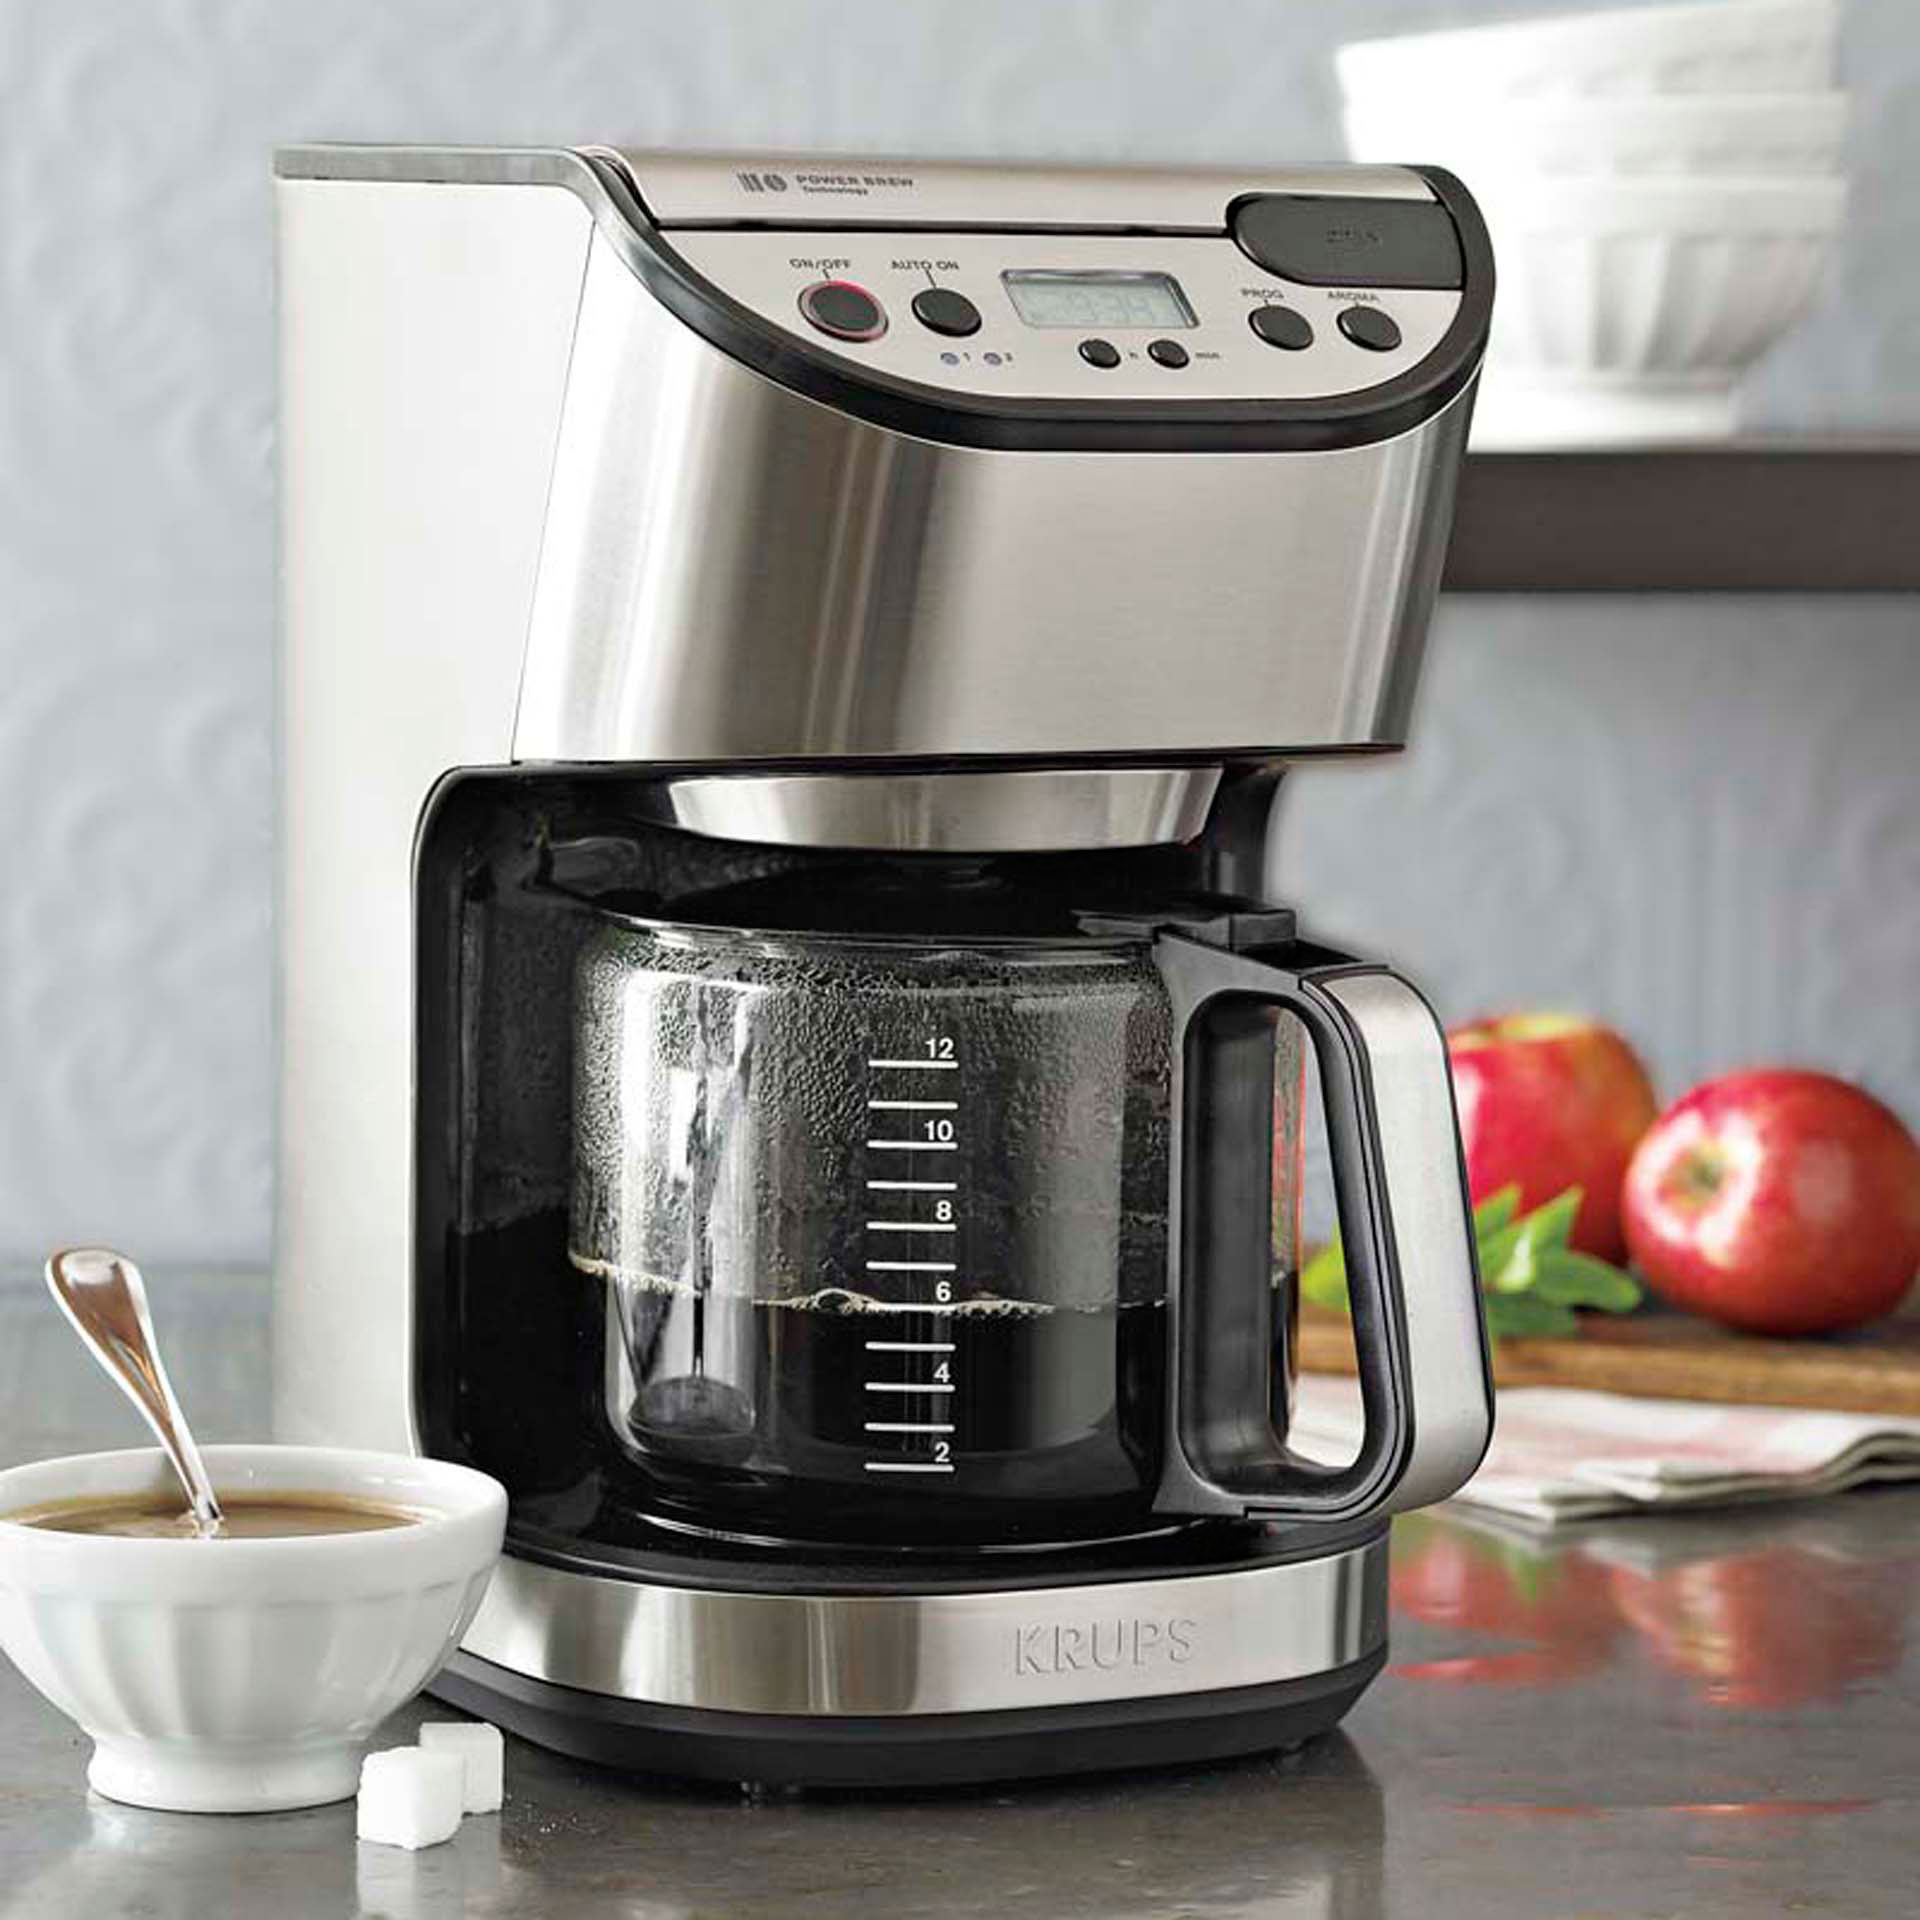 Princess One Cup Coffee Maker Review : Krups Precision 12-Cup Coffeemaker Review